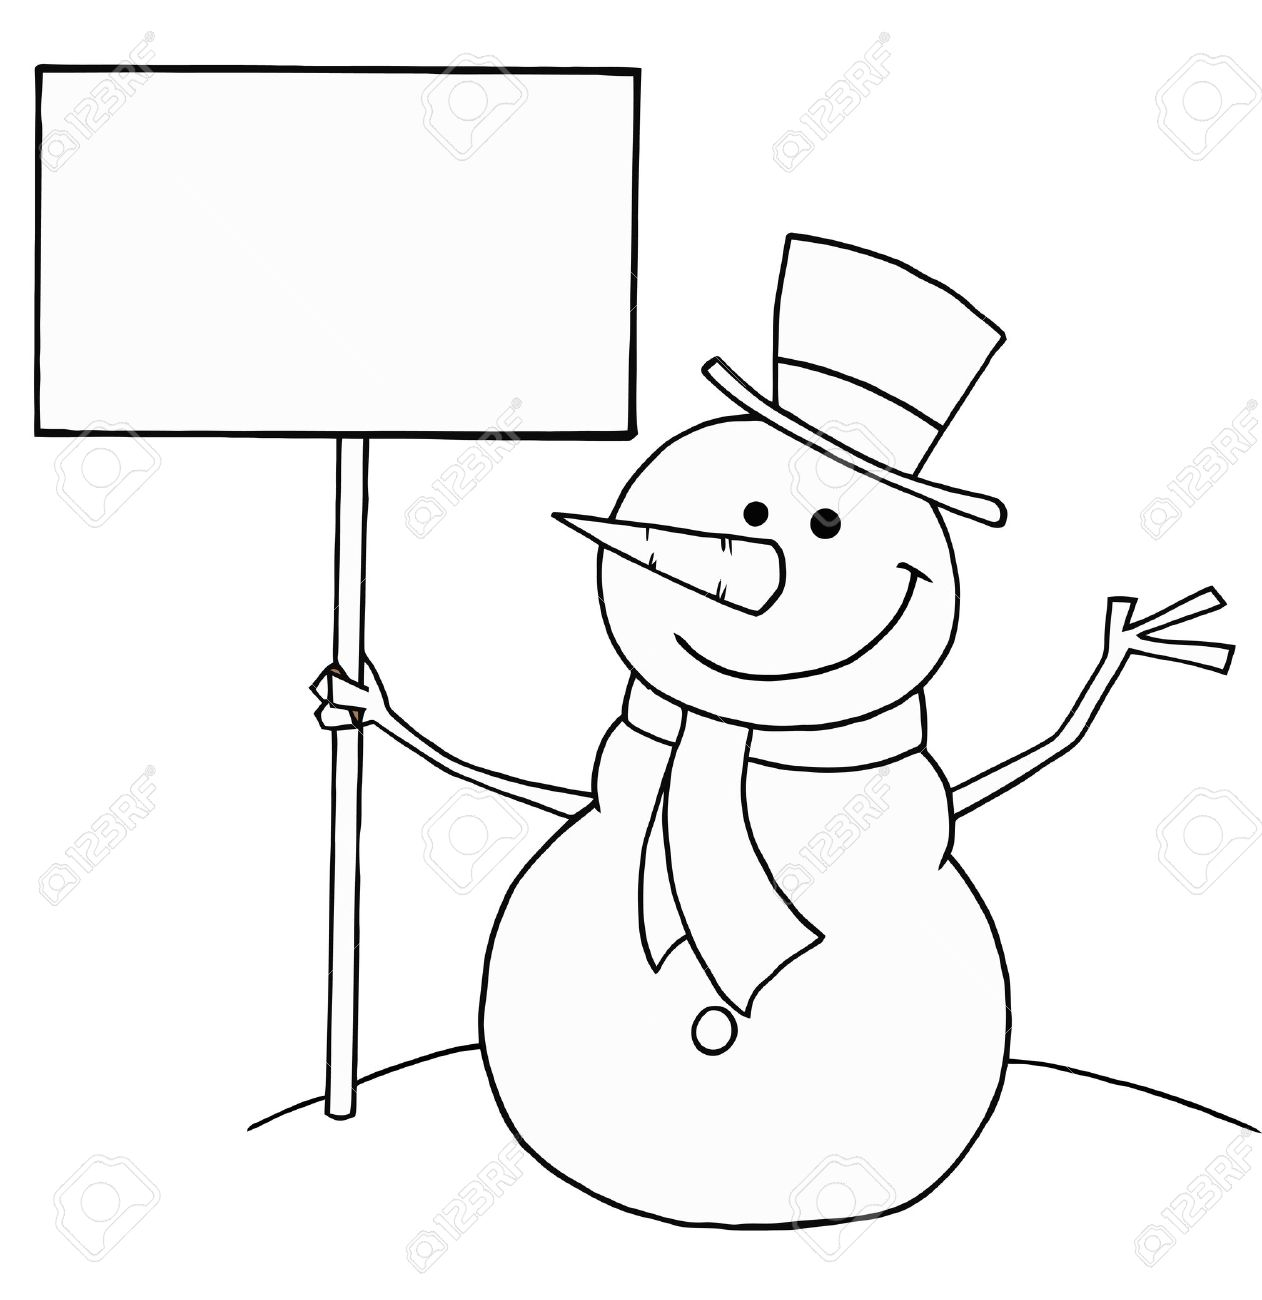 Black And White Coloring Page Outline Of A Snowman Holding A ...